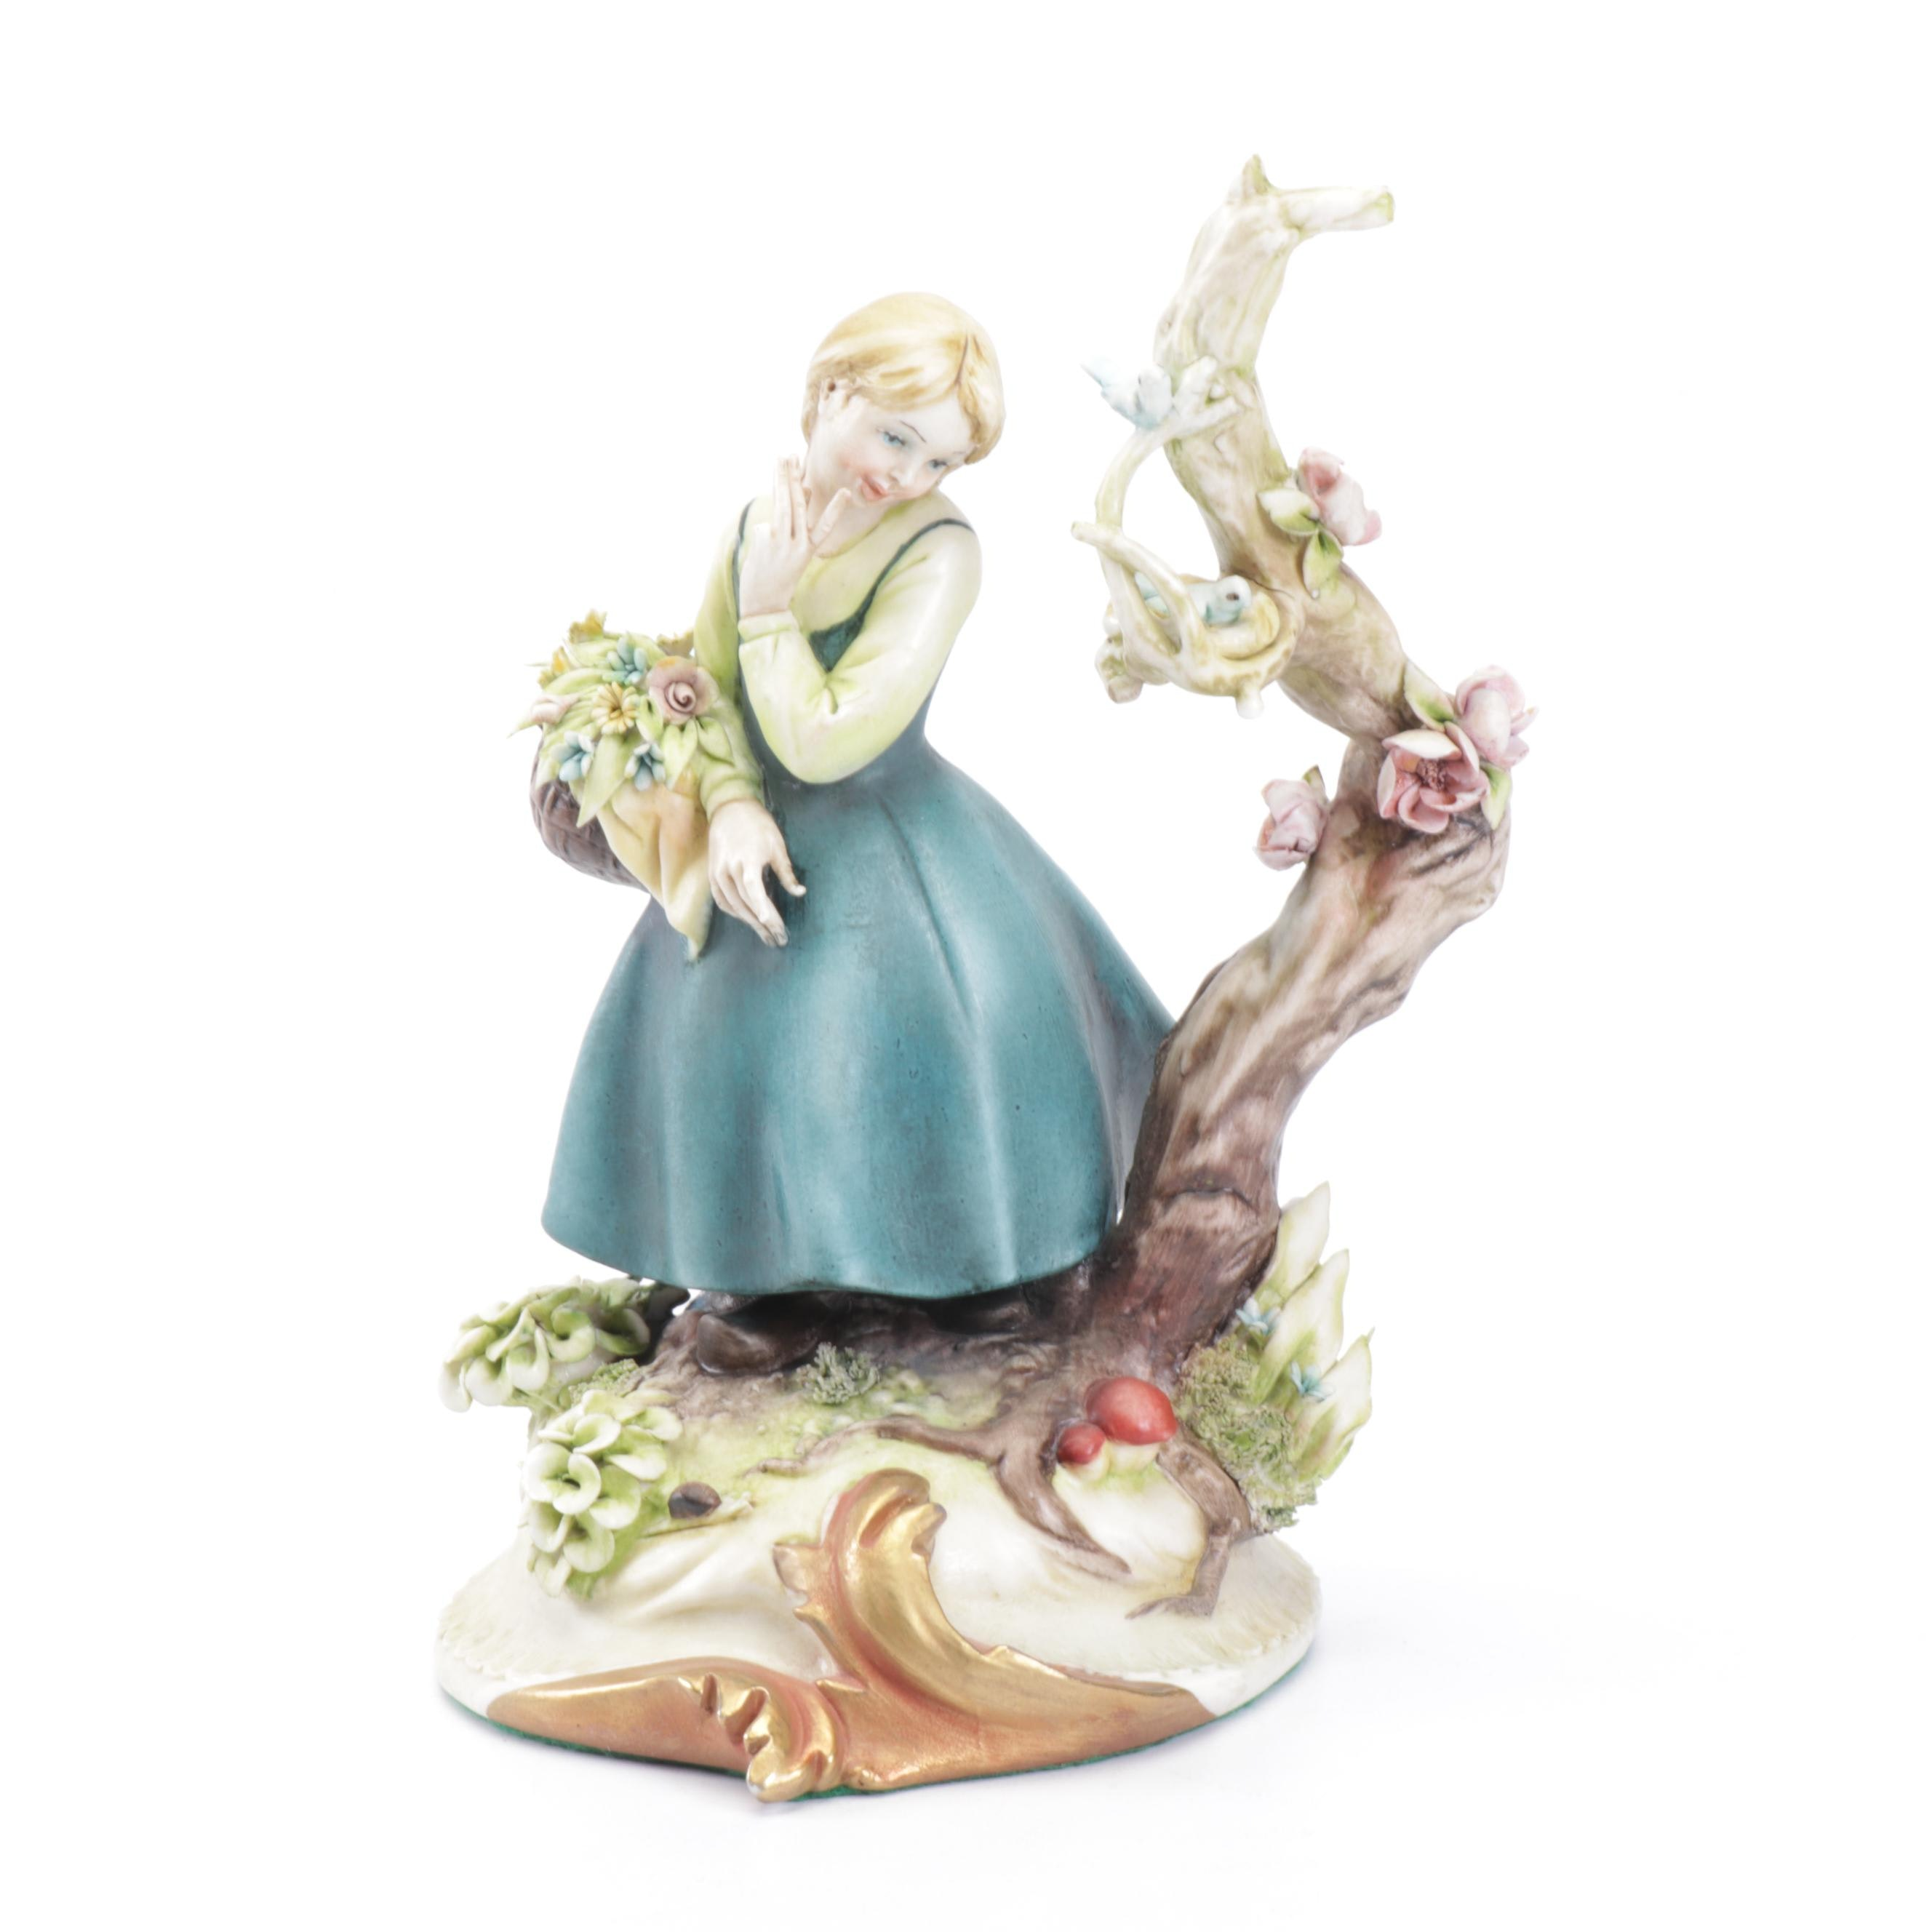 Antonio Borsato Porcelain Woman with Flower Basket Figurine